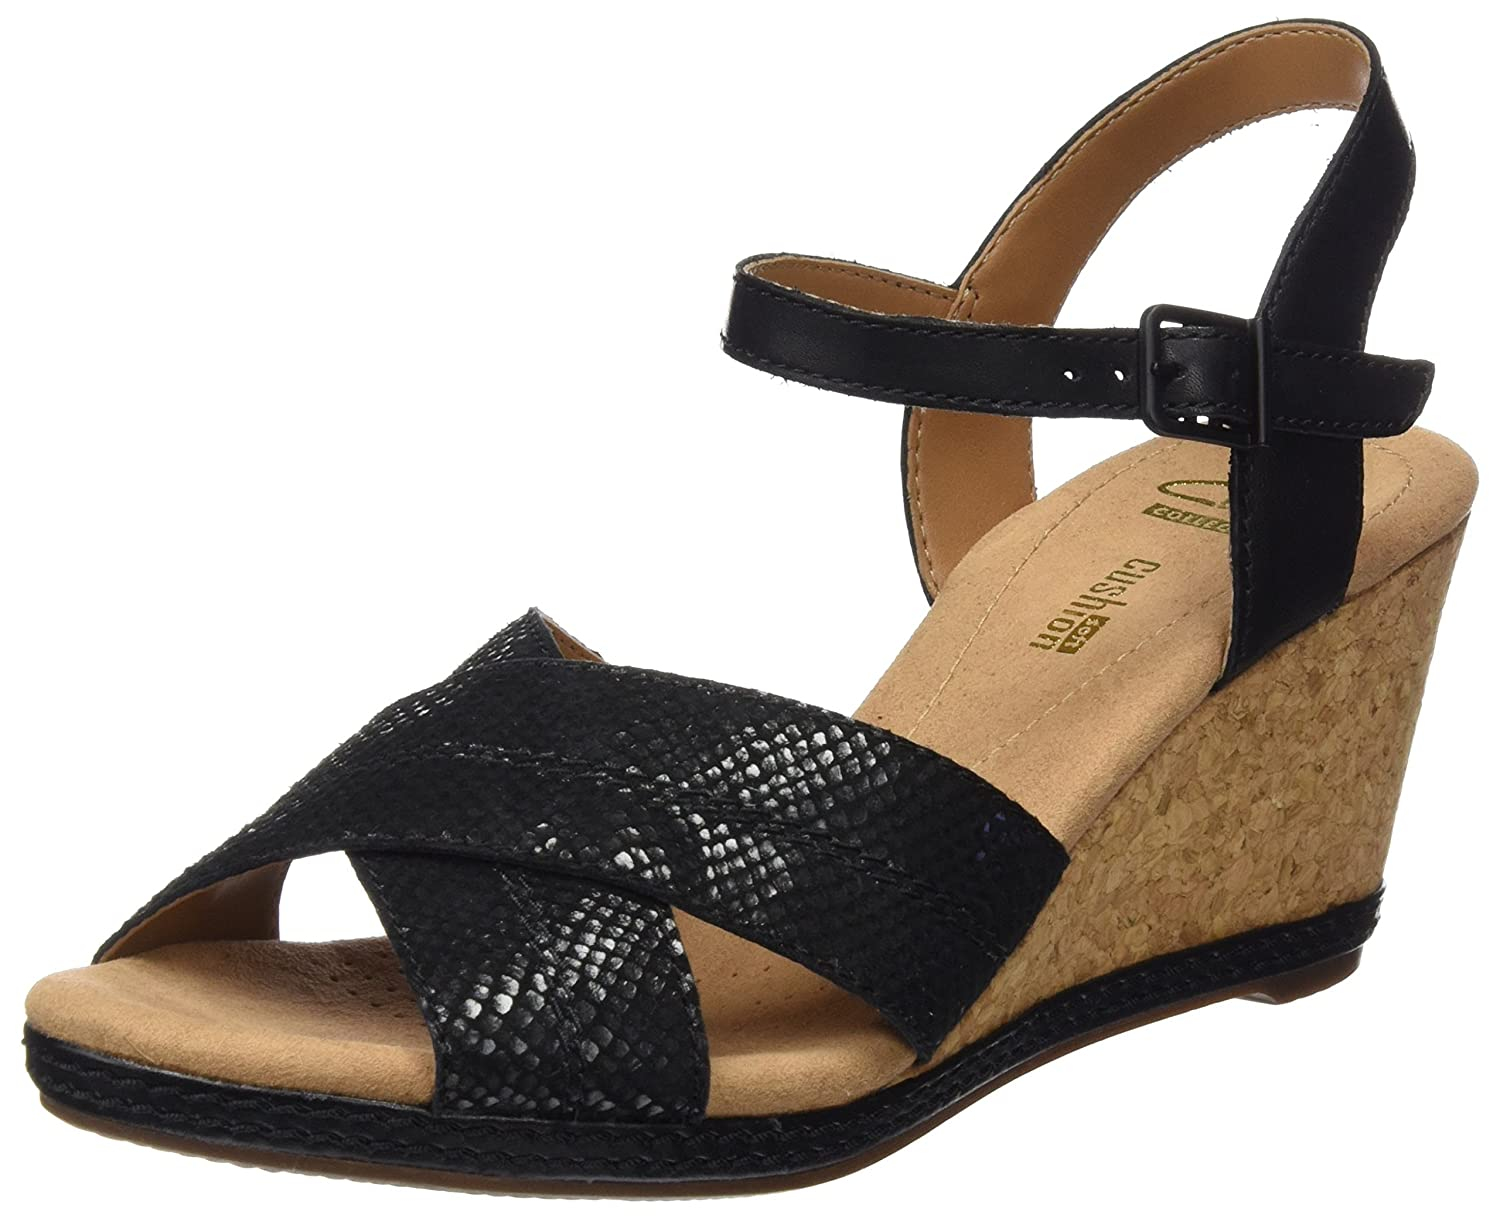 73c33725cdc Clarks Women s Helio Latitude Leather Fashion Sandals  Buy Online at Low  Prices in India - Amazon.in